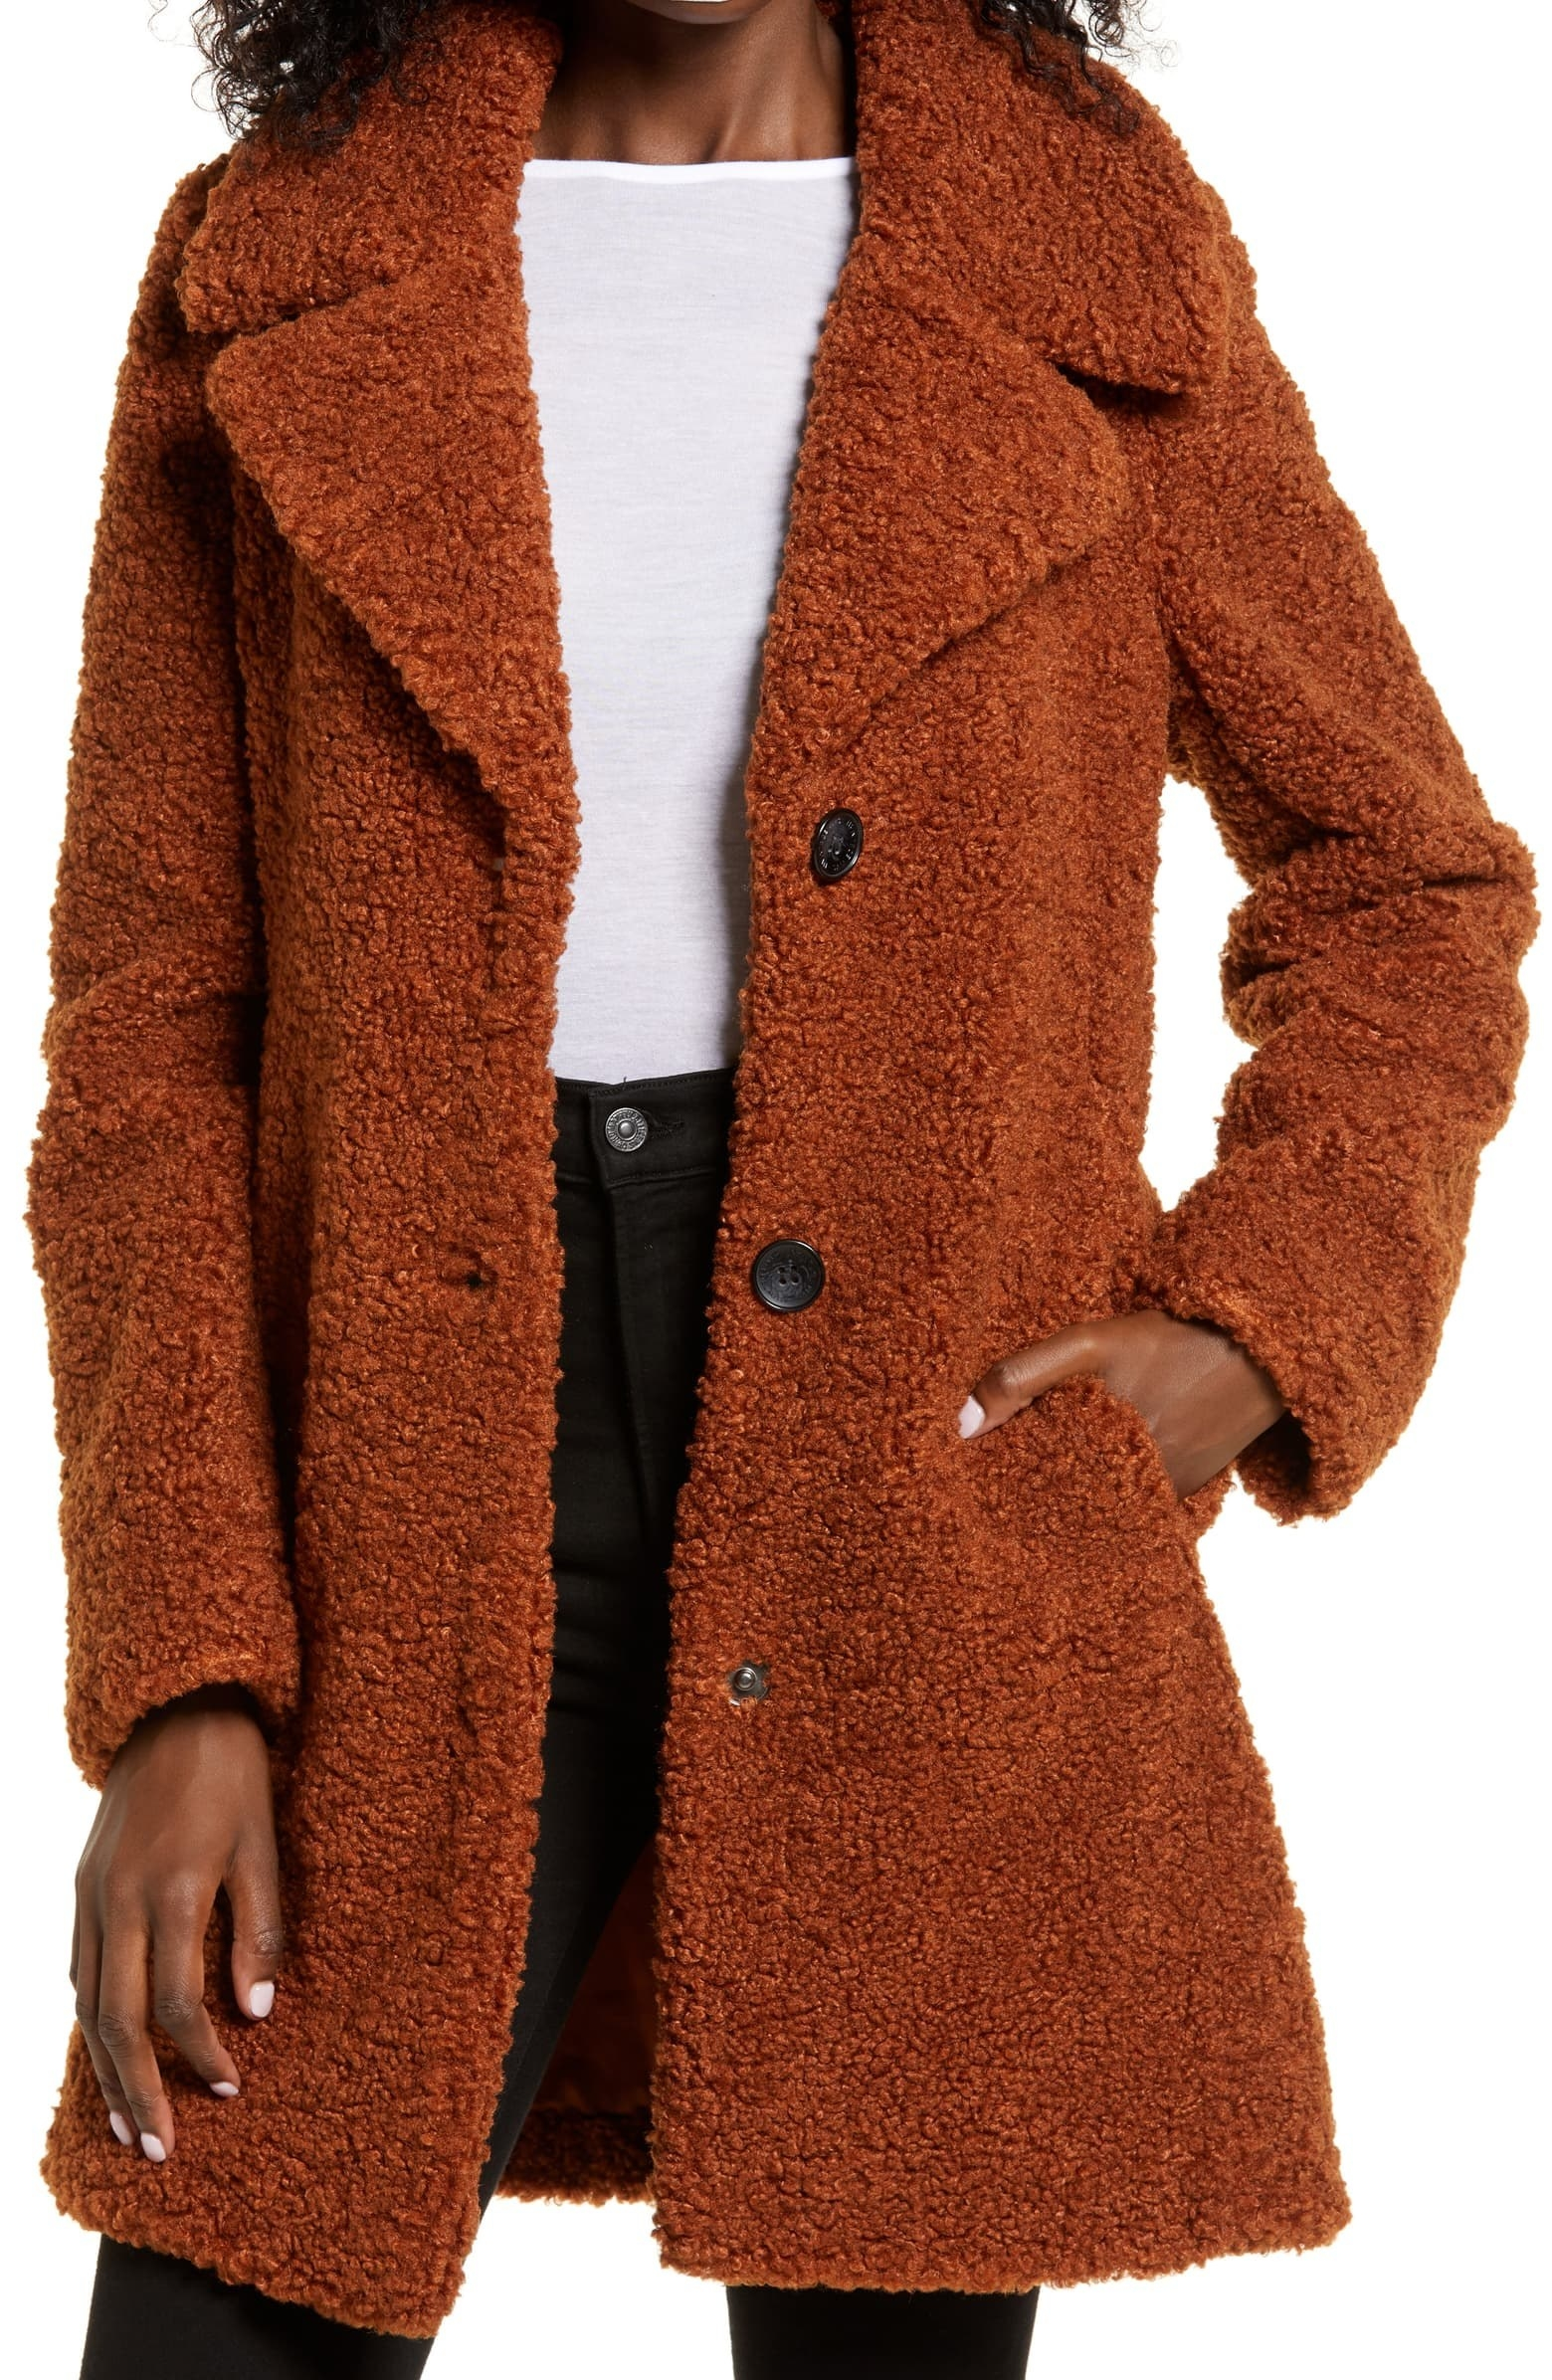 a model in a fuzzy brown/orange coat